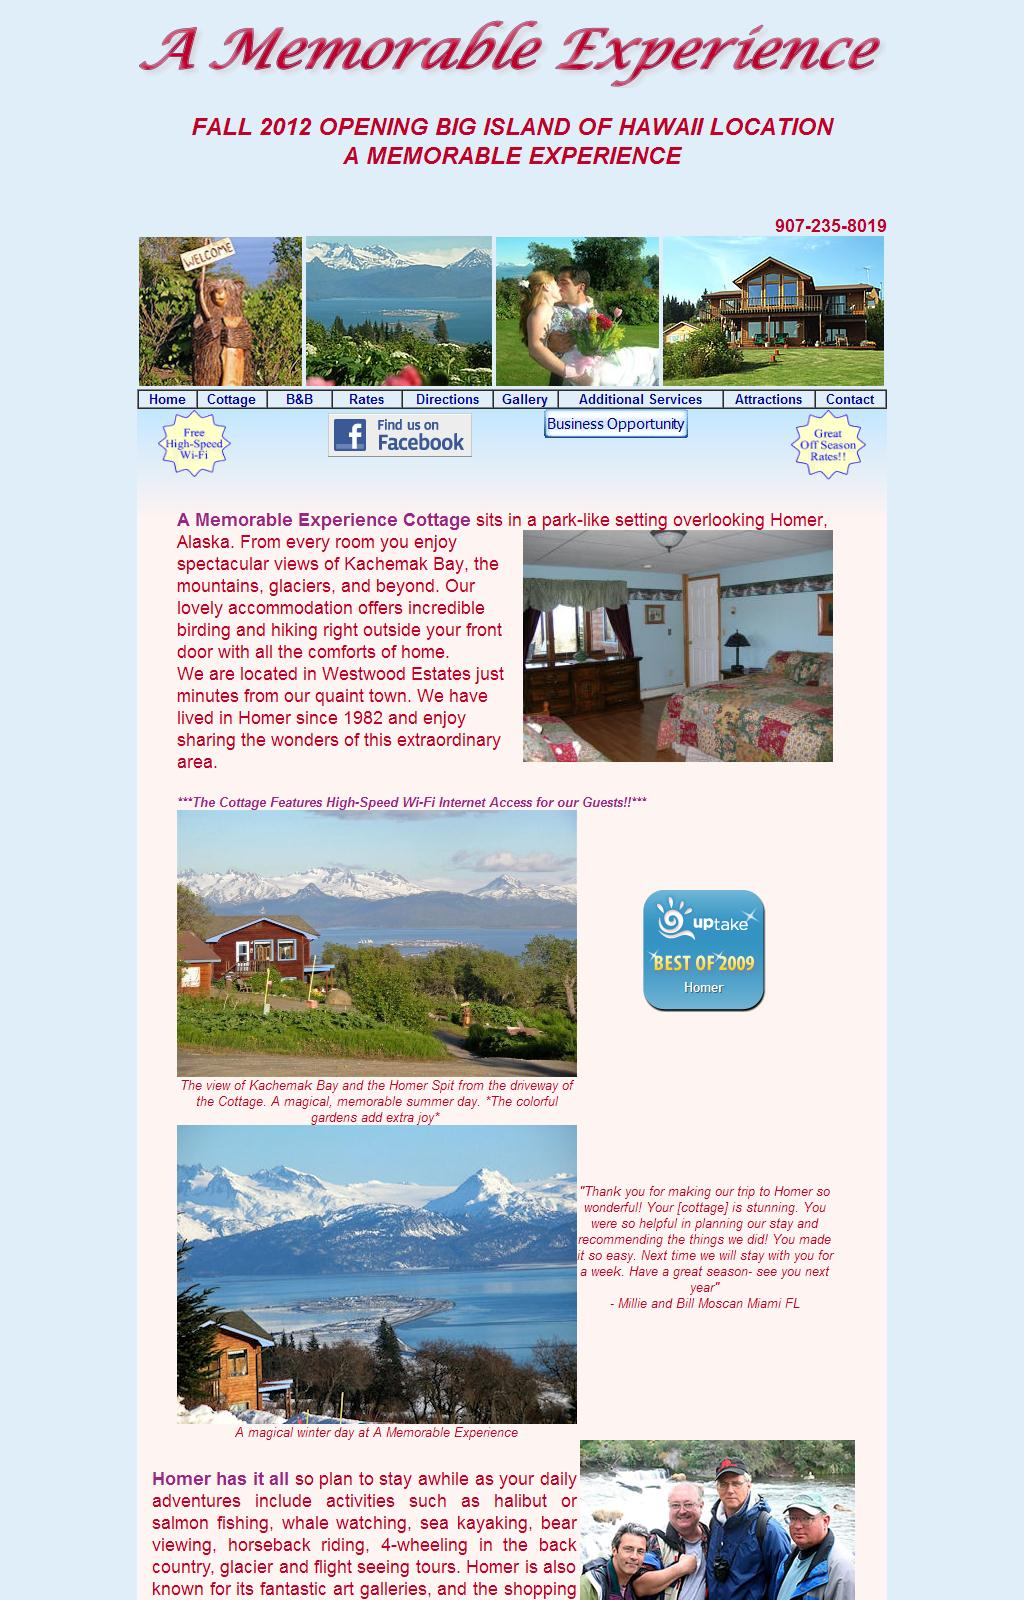 Bed and Breakfast, Cottage, Full Wedding and Catering Services